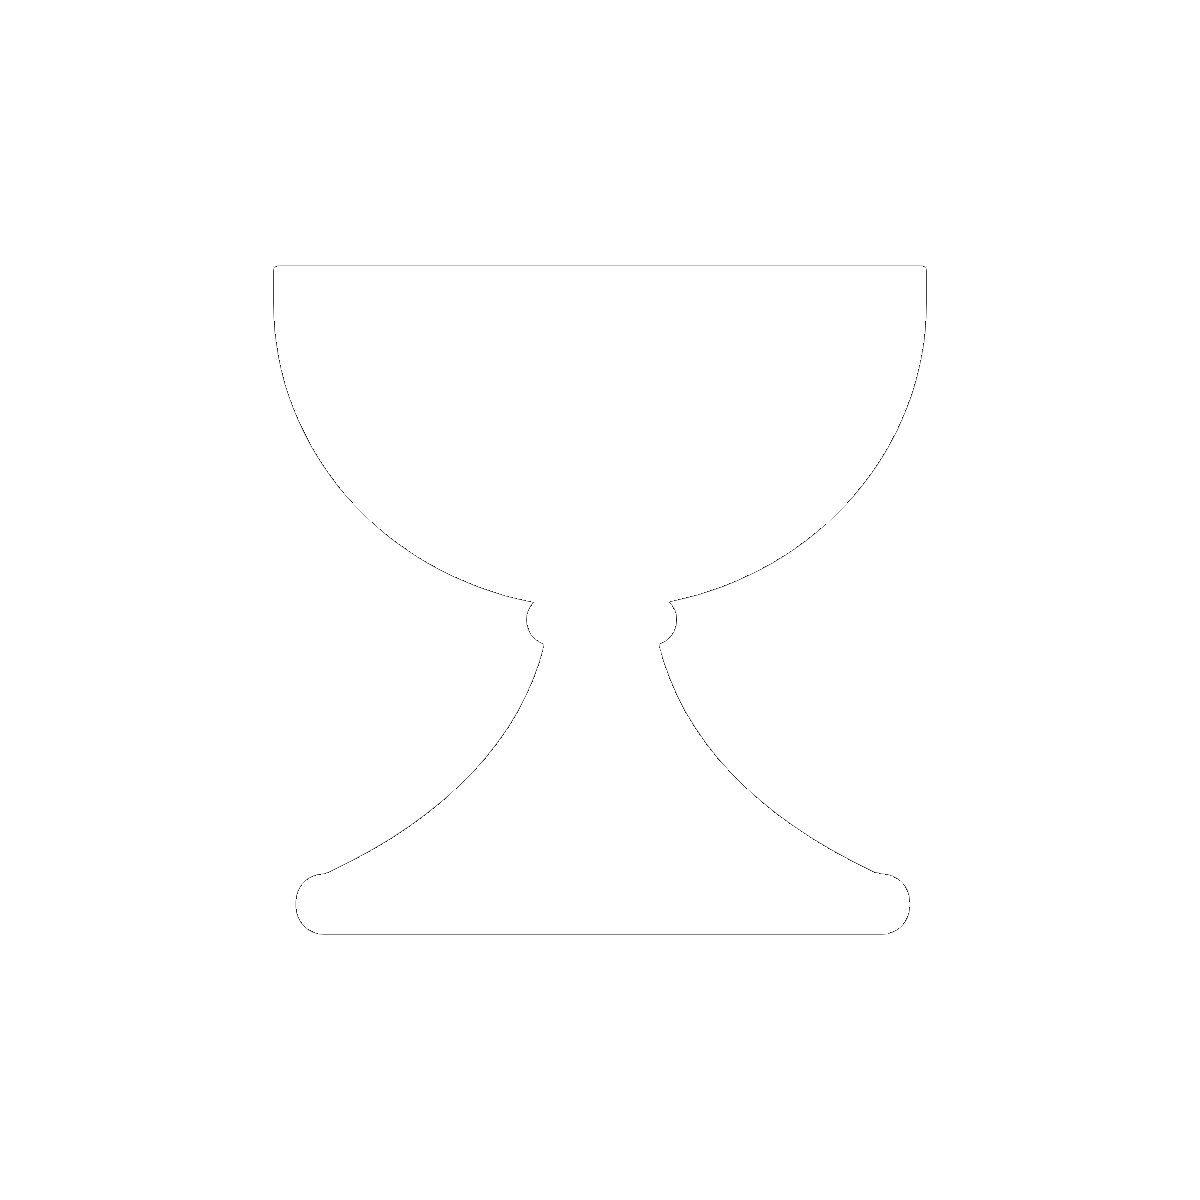 Symbol The Golden Chalice